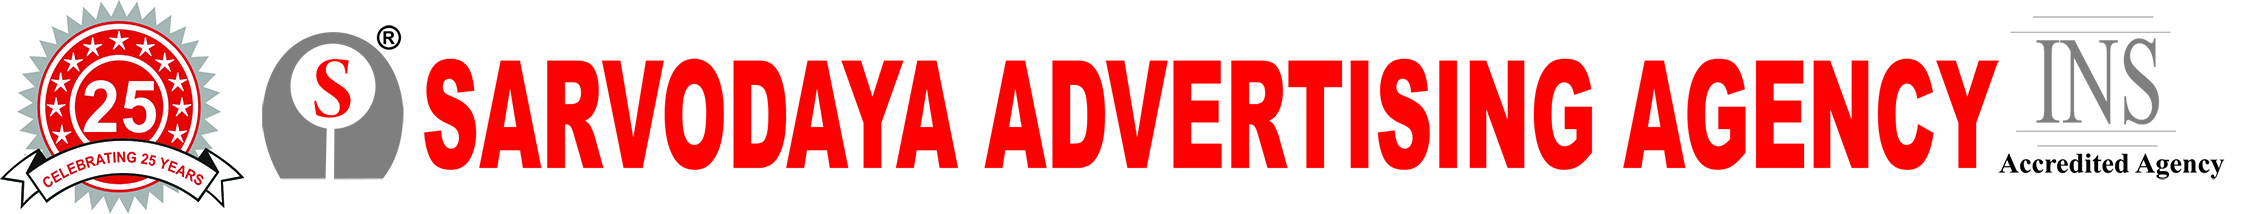 Sarvodaya advertising agency